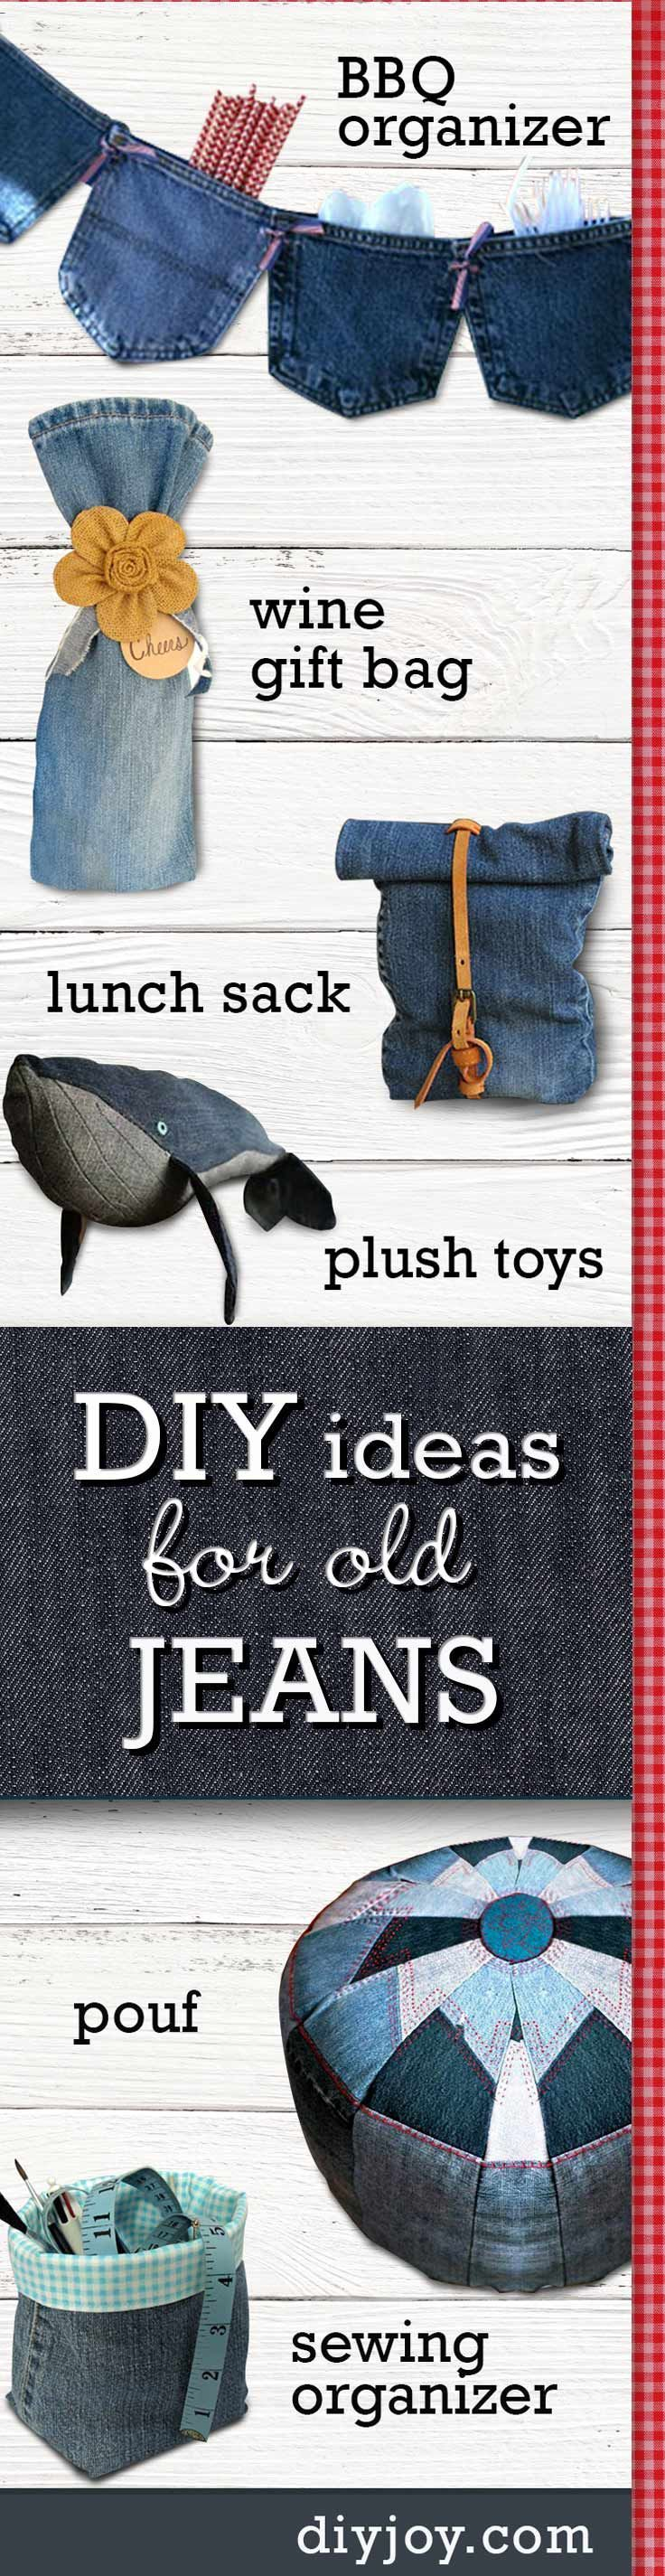 DIY ideas for old jeans - Upcycling Projects with Denim | Cute Crafts and Creative Home Decor by DIY JOY http://diyjoy.com/16-upcycled-projects-from-old-jeans